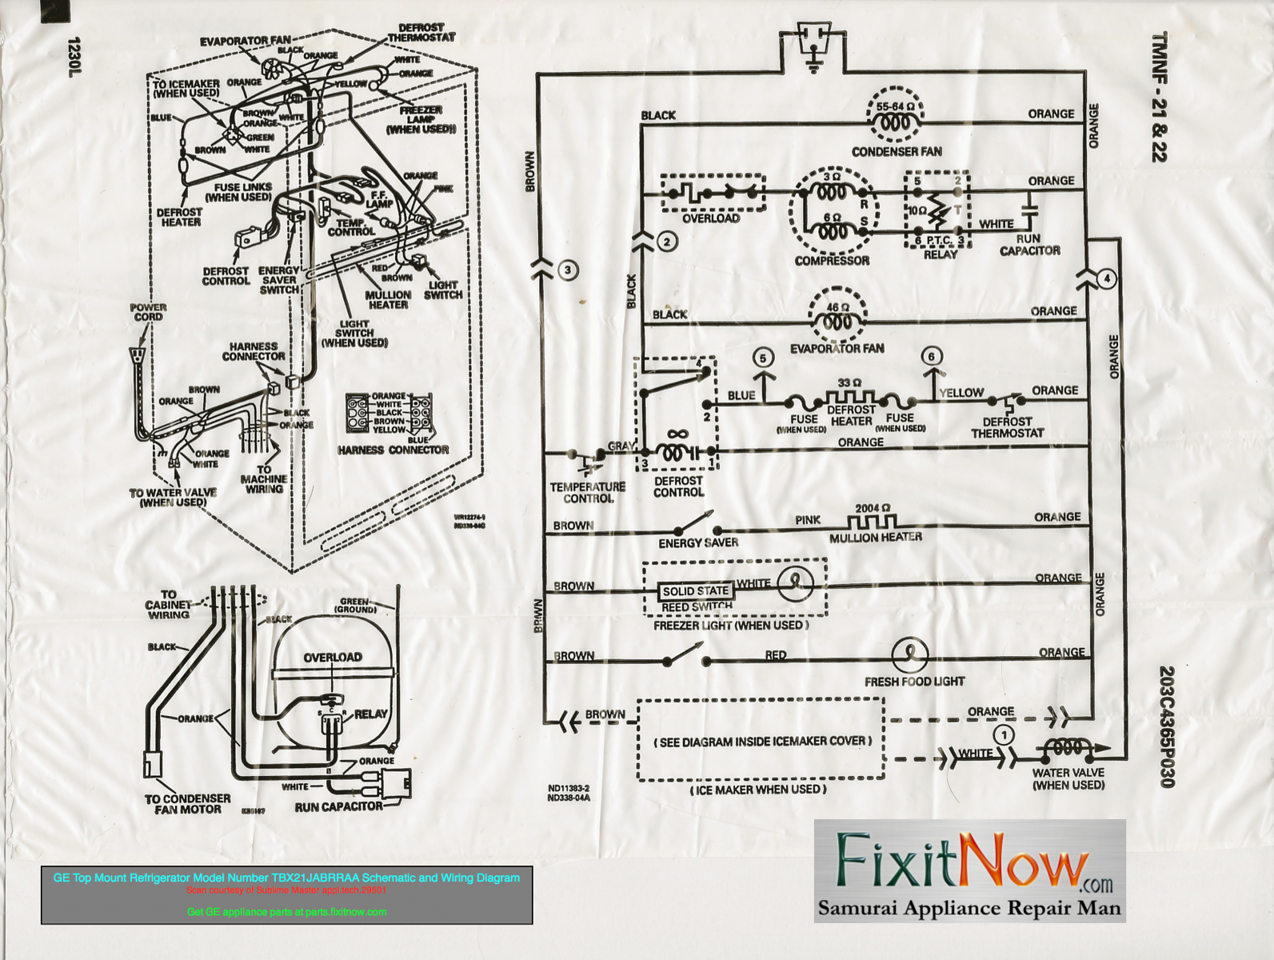 4904374061_e8eb3df6c6_o X2 wiring diagrams and schematics appliantology wiring diagram schematic at eliteediting.co